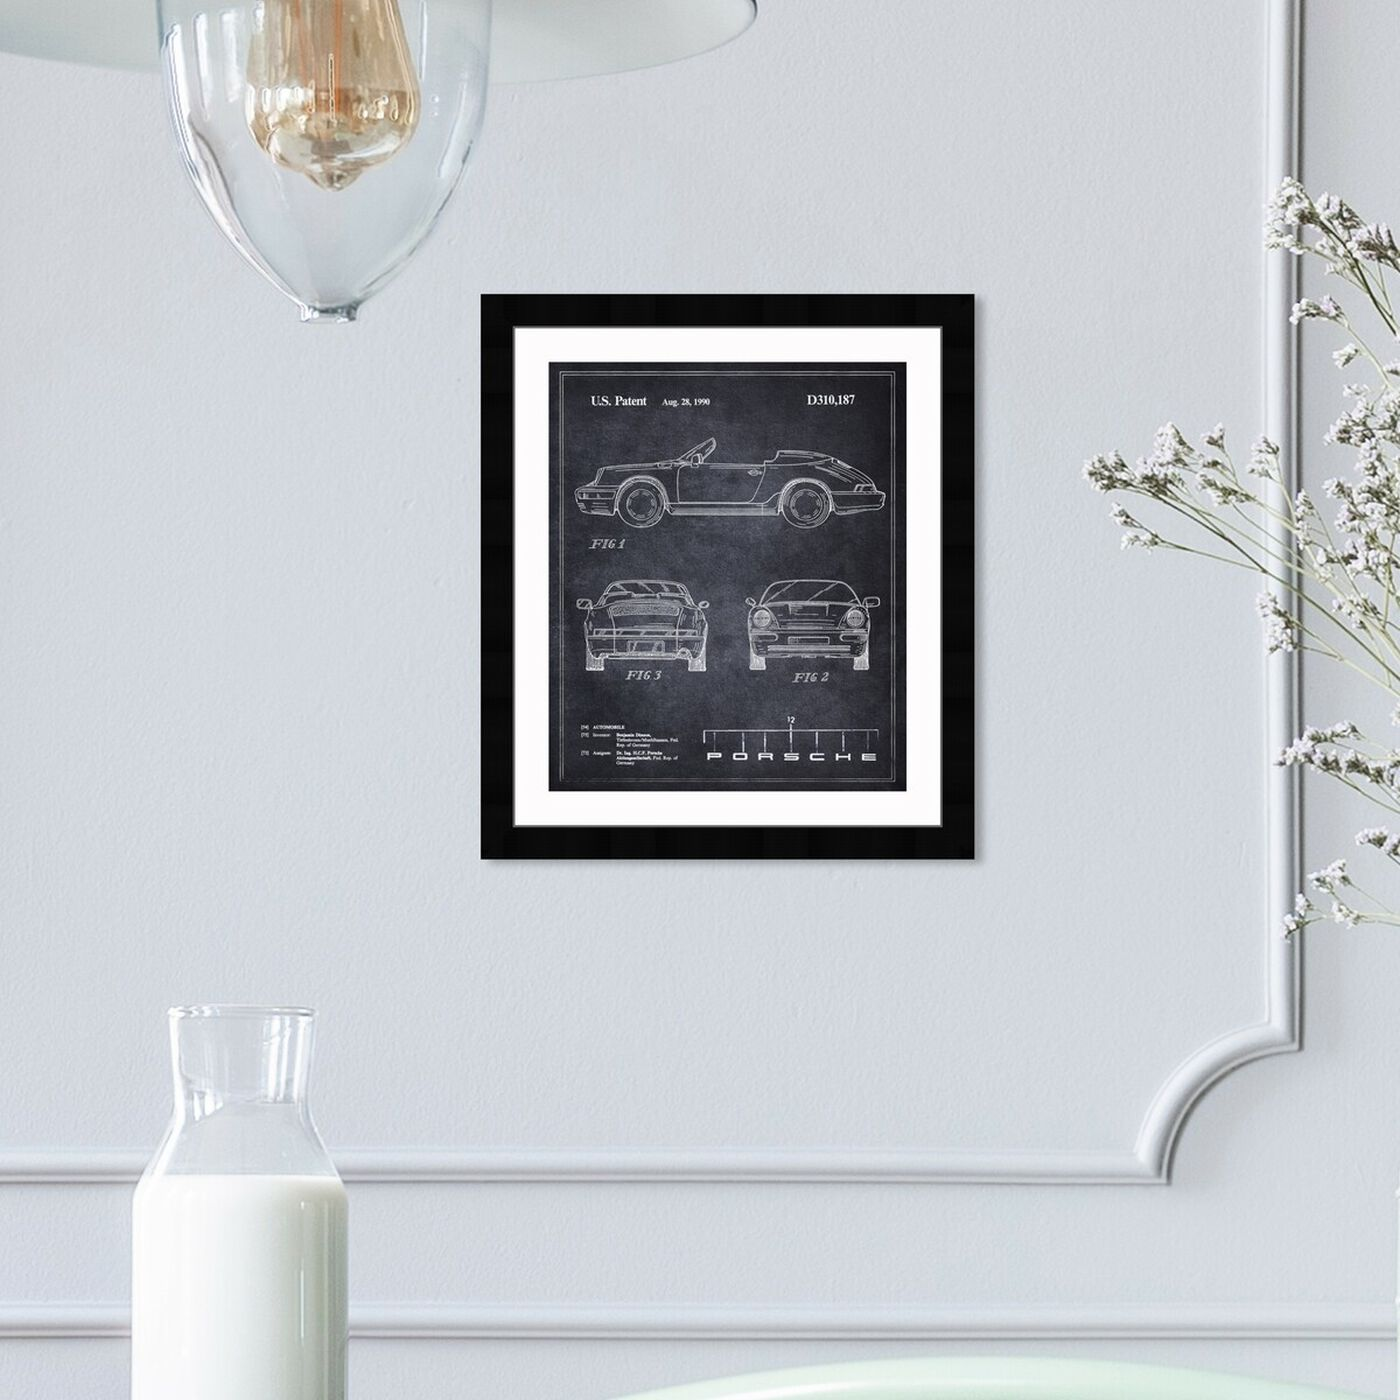 Hanging view of Porsche 911, 1990 I featuring transportation and automobiles art.